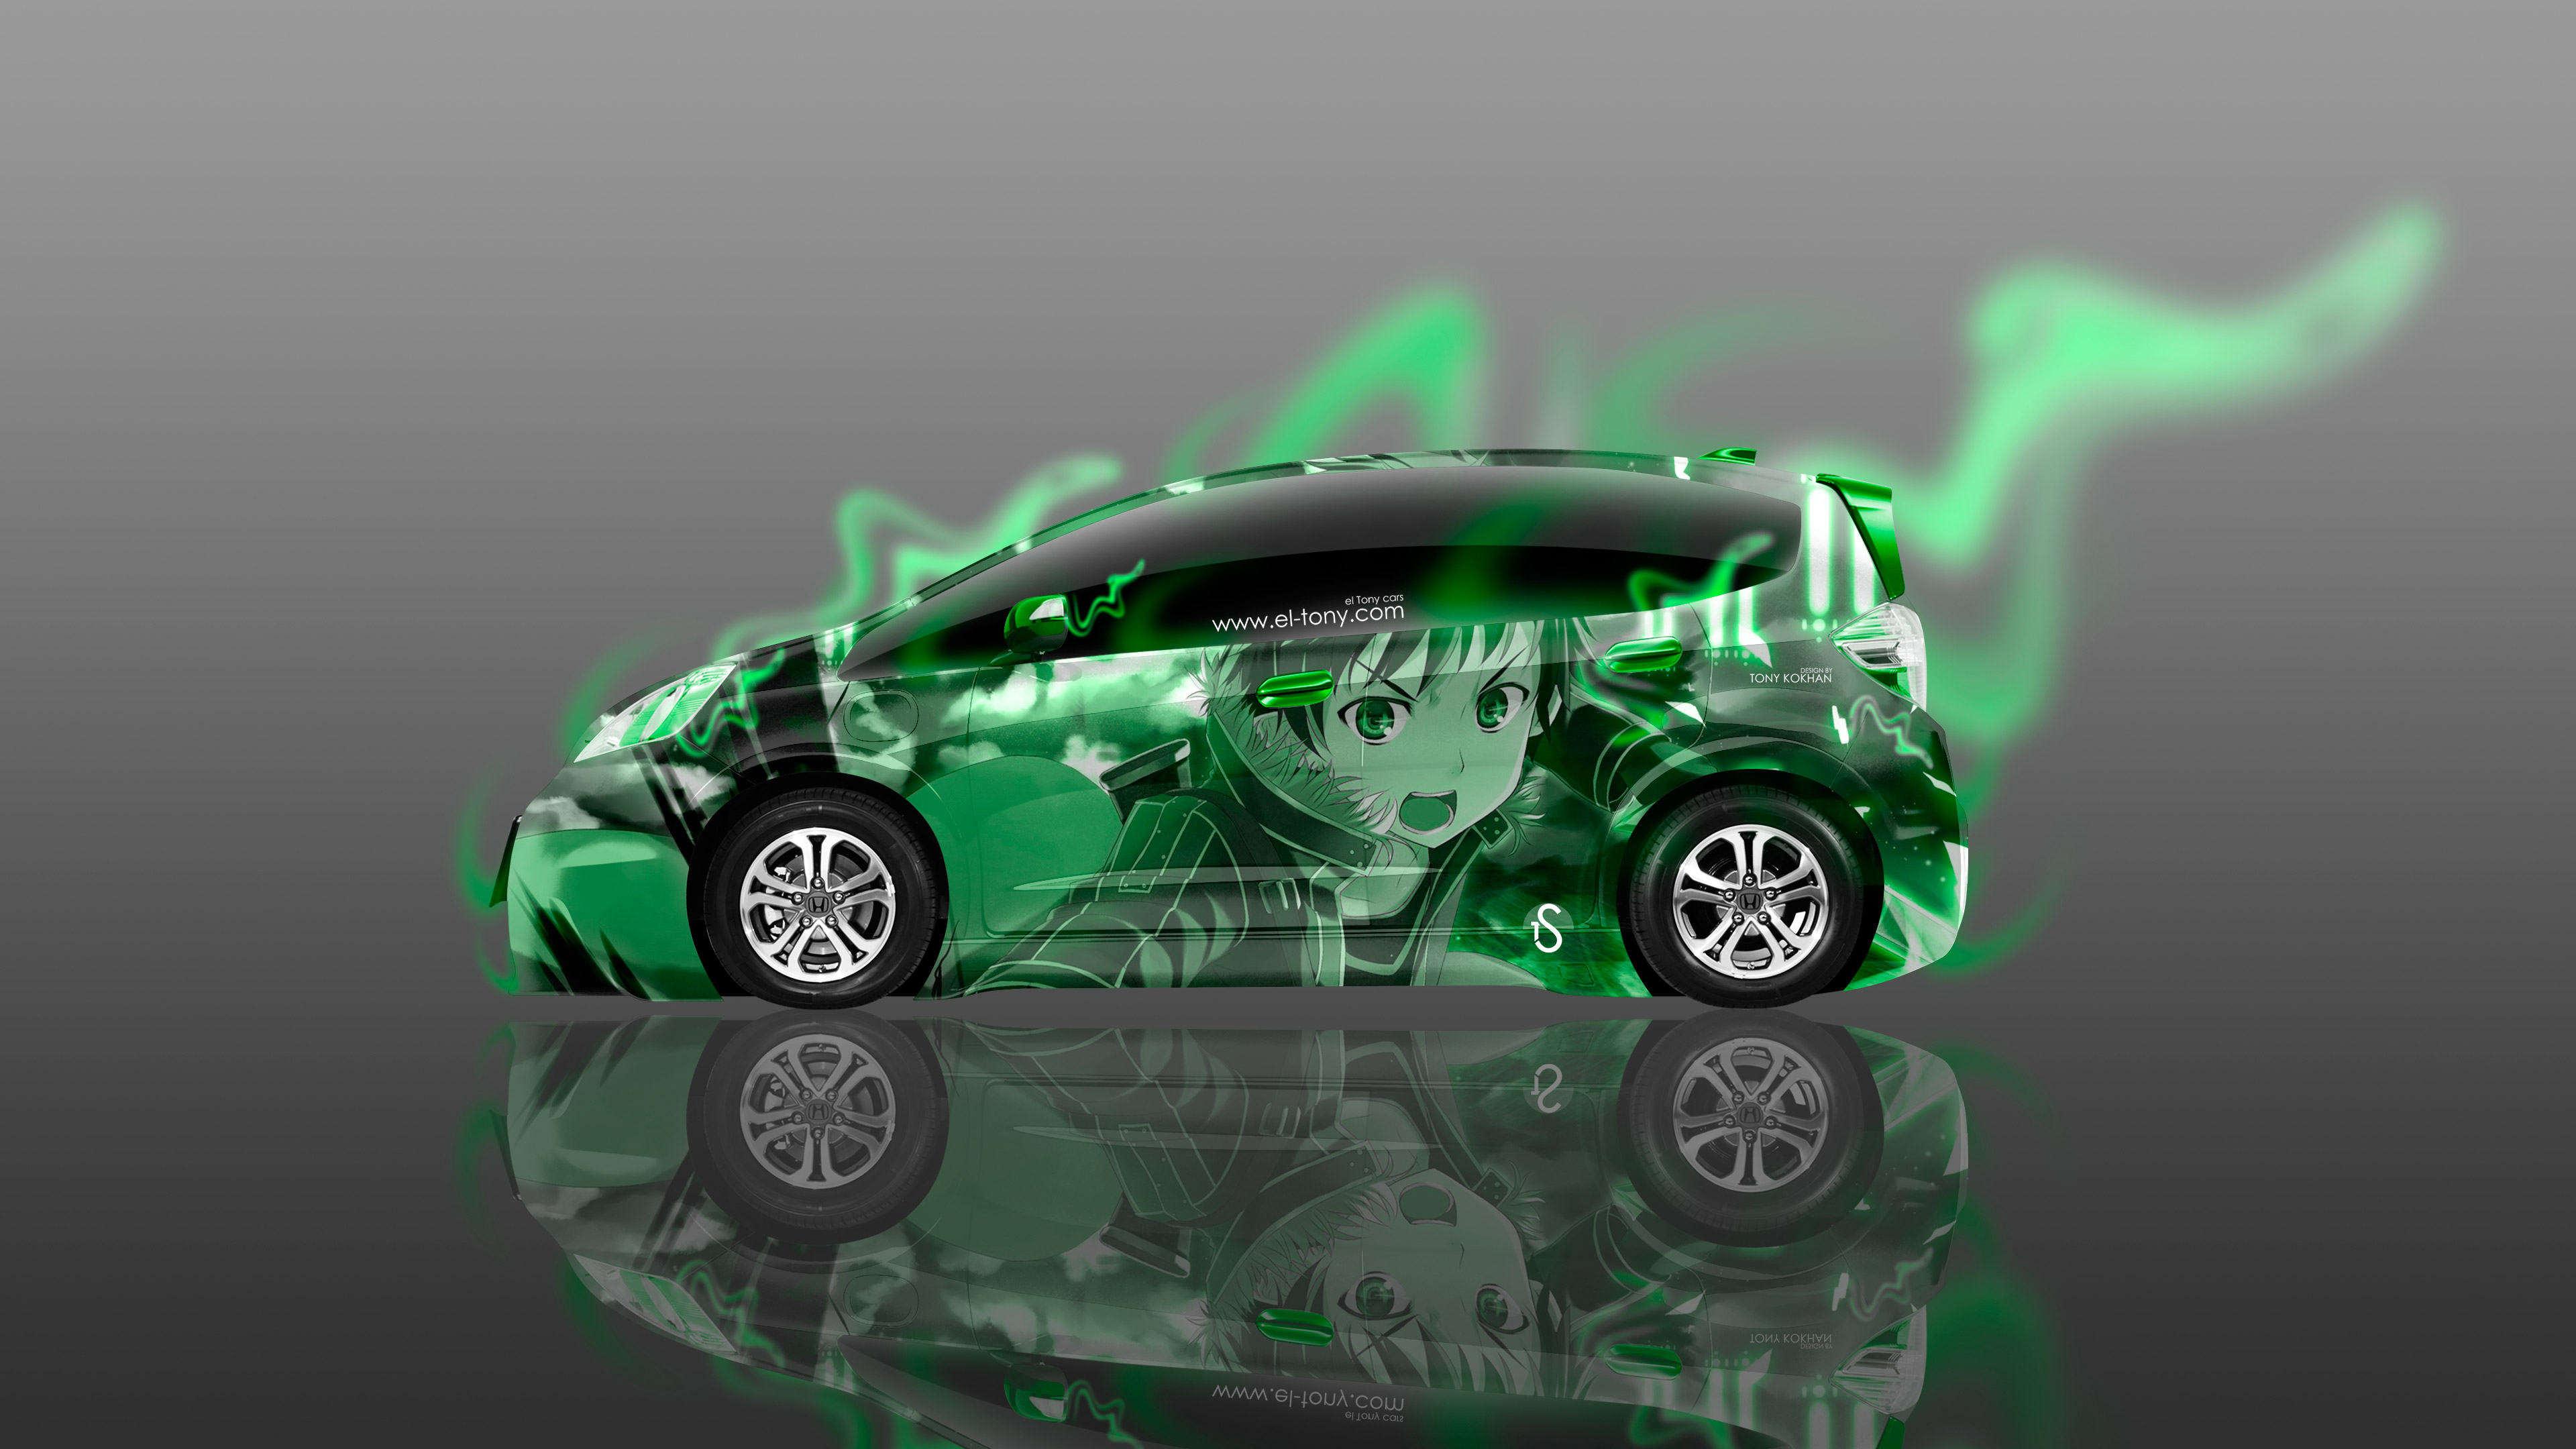 Honda-Fit-JDM-Tuning-Side-Anime-Boy-Aerography-Energy-Car-2016-Creative-Green-Neon-Effects-4K-Wallpapers-design-by-Tony-Kokhan-www.el-tony.com-image